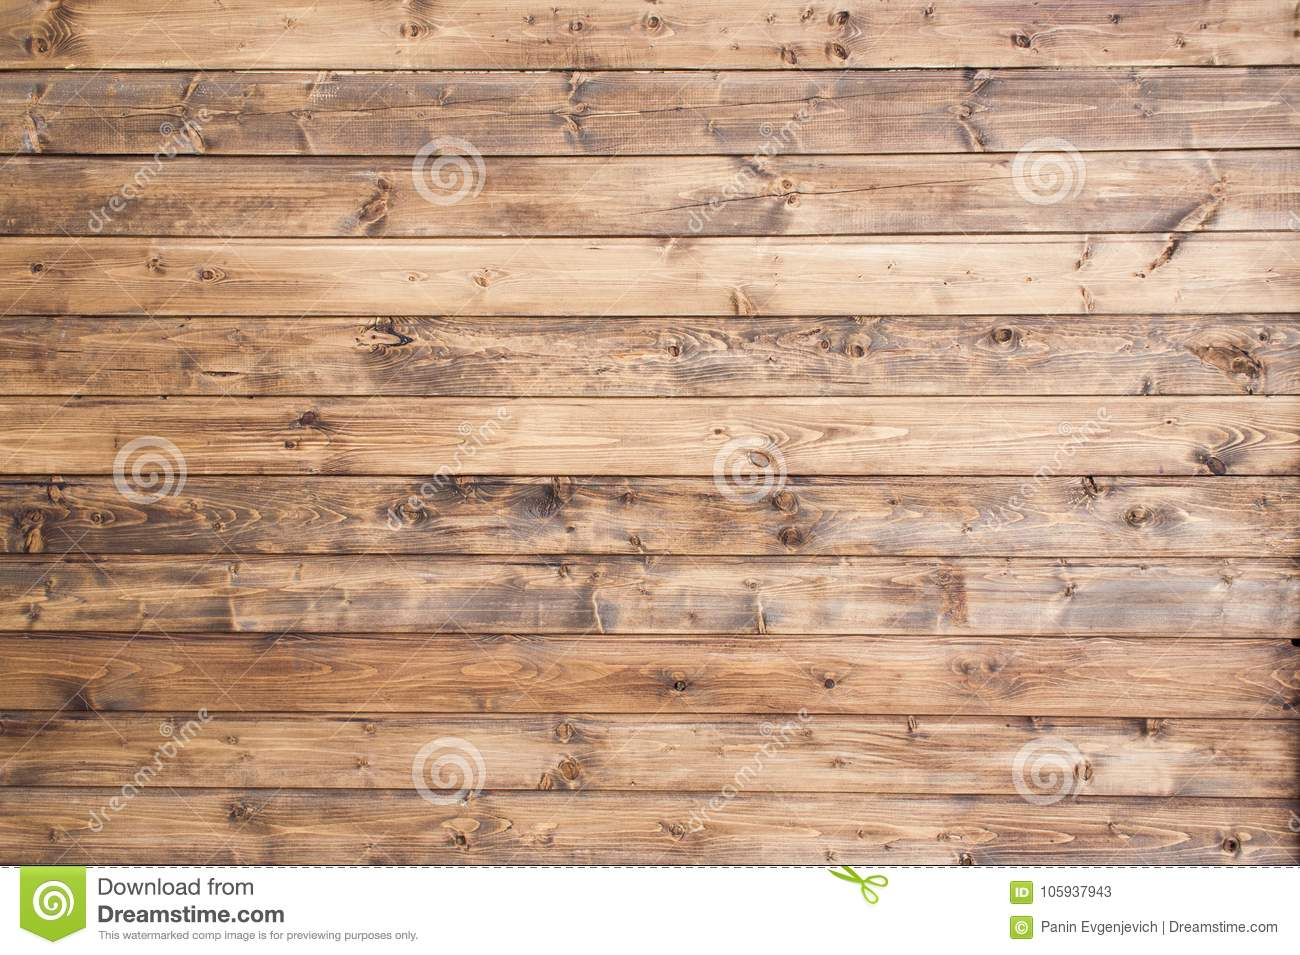 Dark Round Oval Shape, Wood Panel Background, natural brown color, stack horizontal to show grain texture as wall